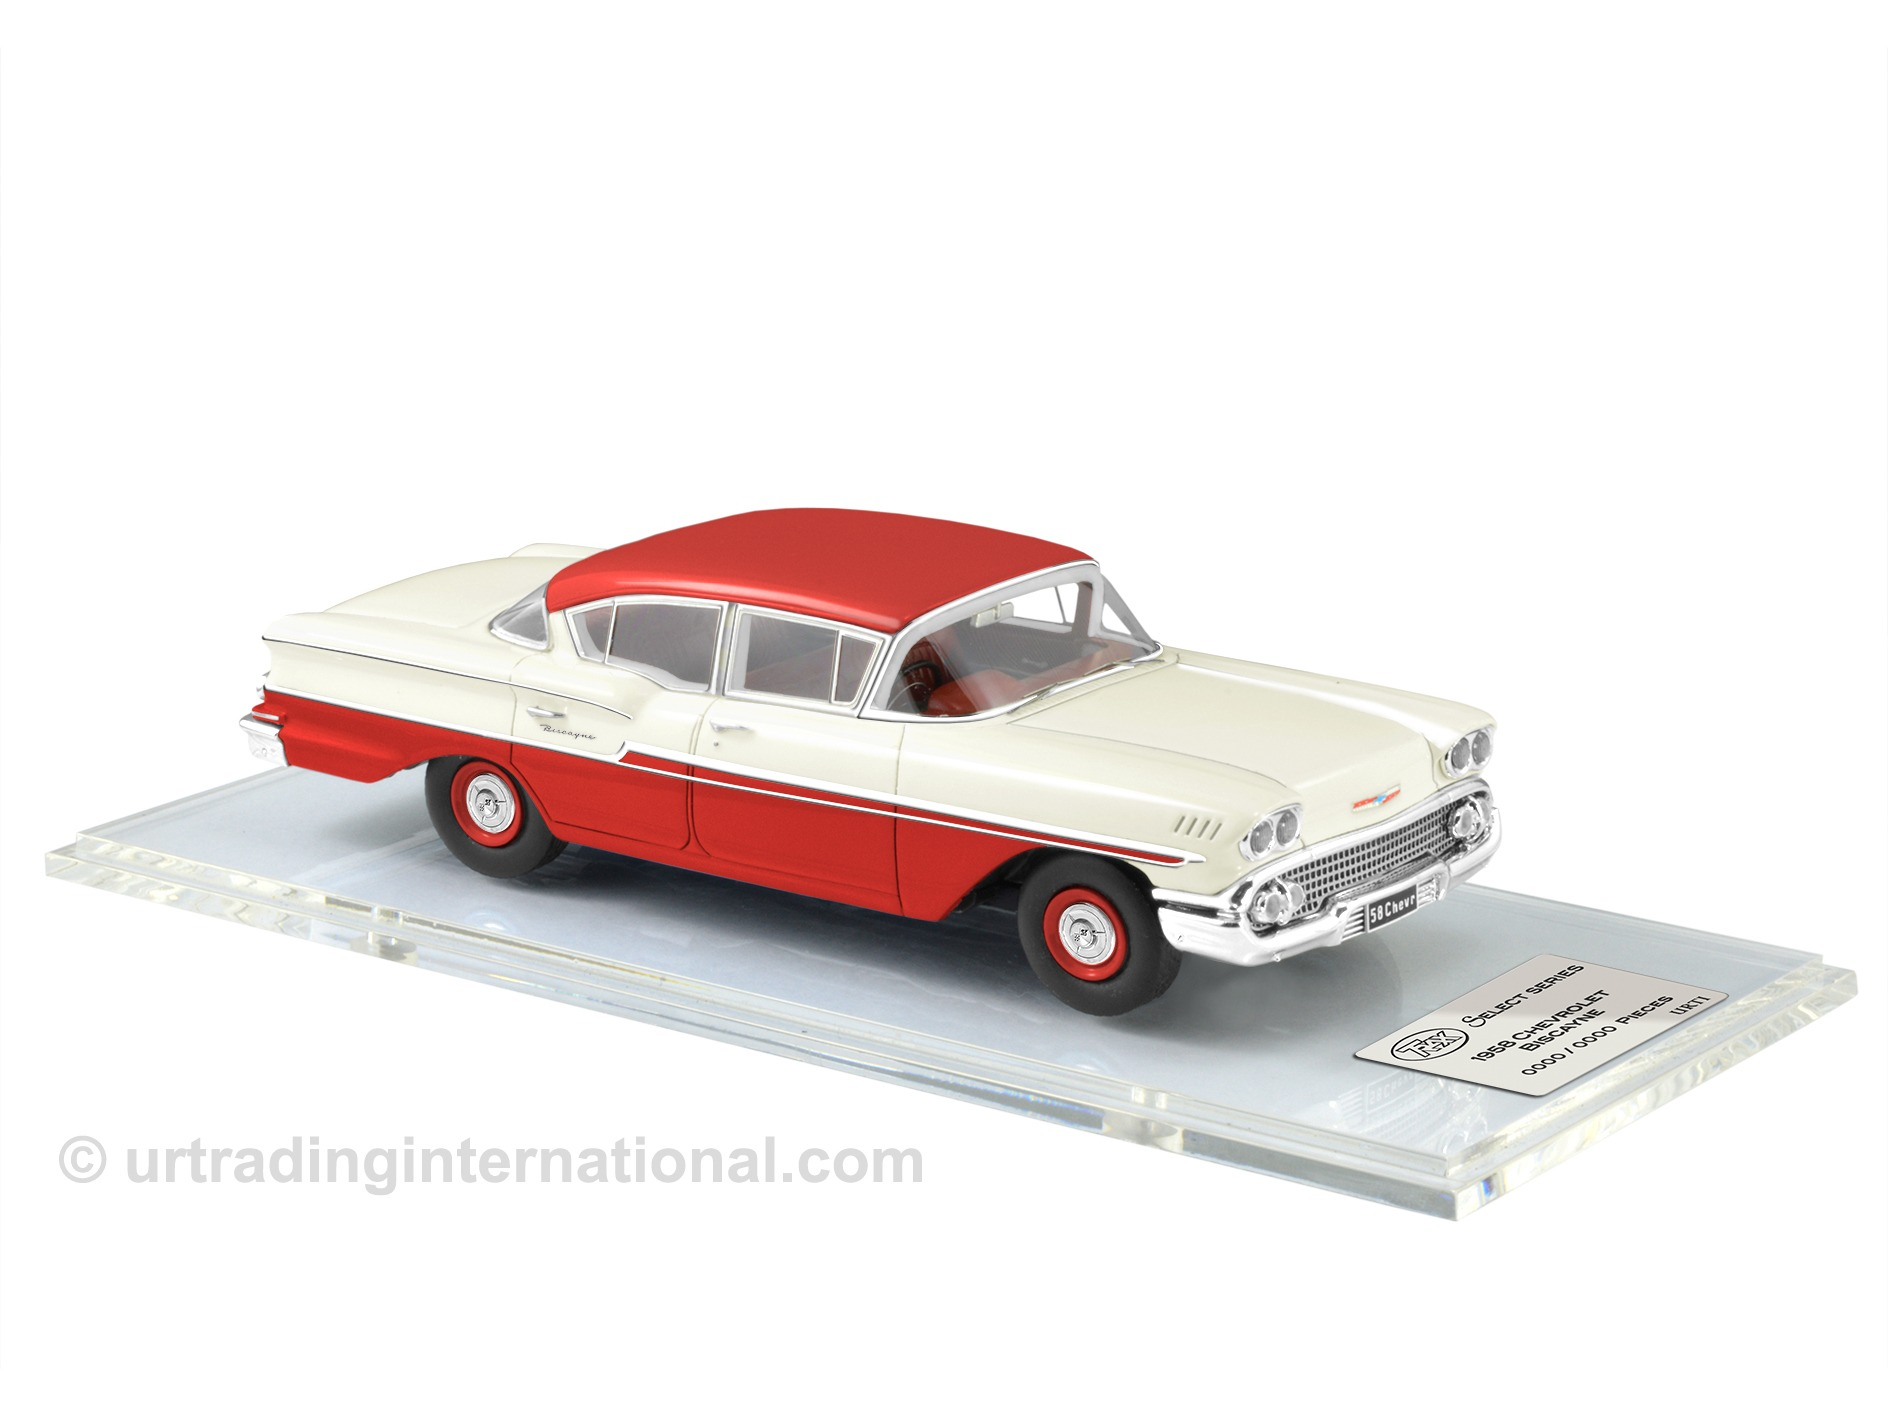 1958 Chevrolet Biscayne – Arctic White / Red